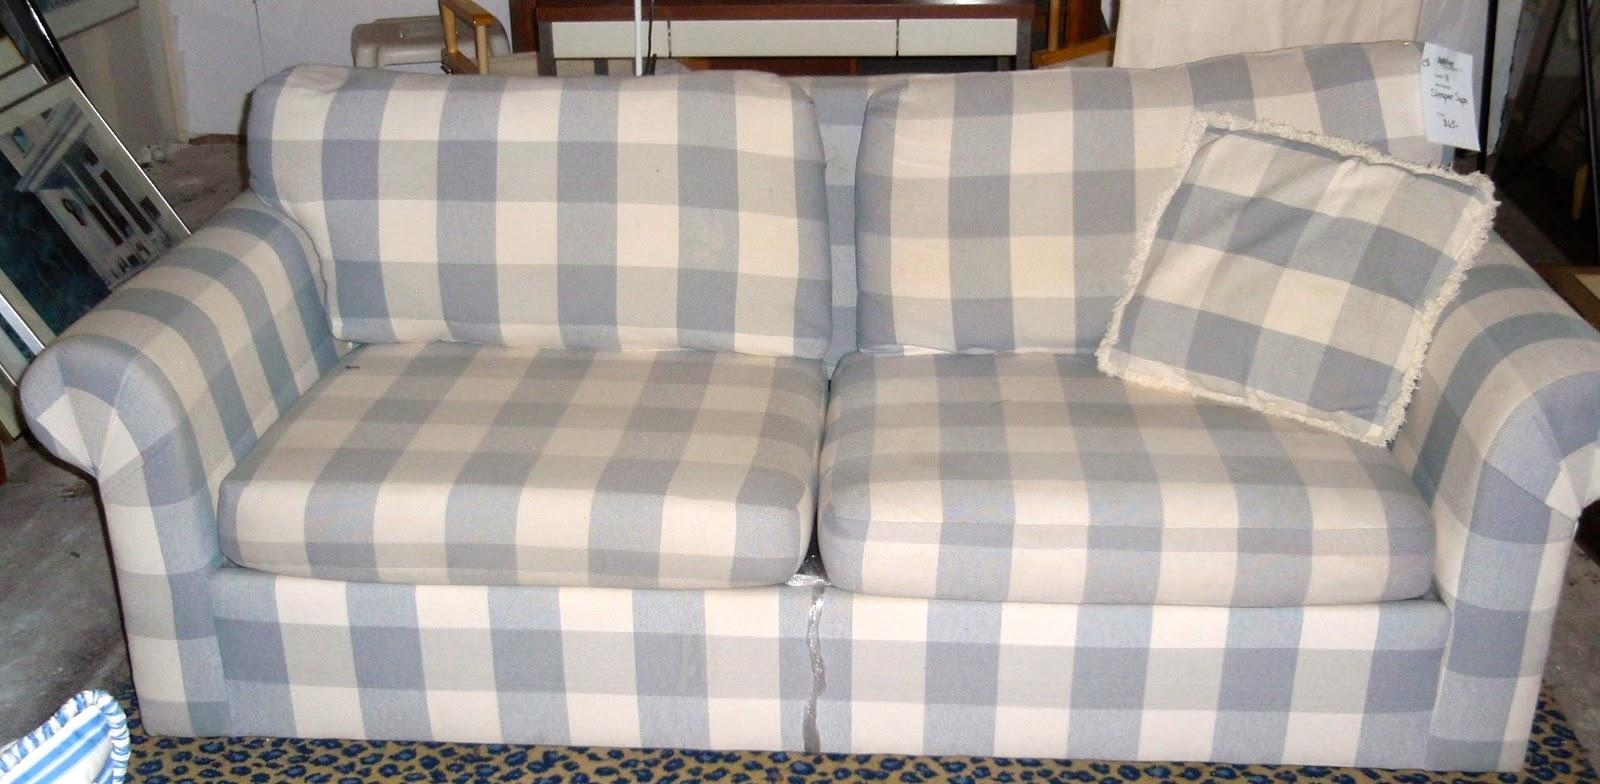 Blue Plaid Sofa With Ideas Hd Images 26160 | Kengire Within Blue Plaid Sofas (Image 5 of 20)